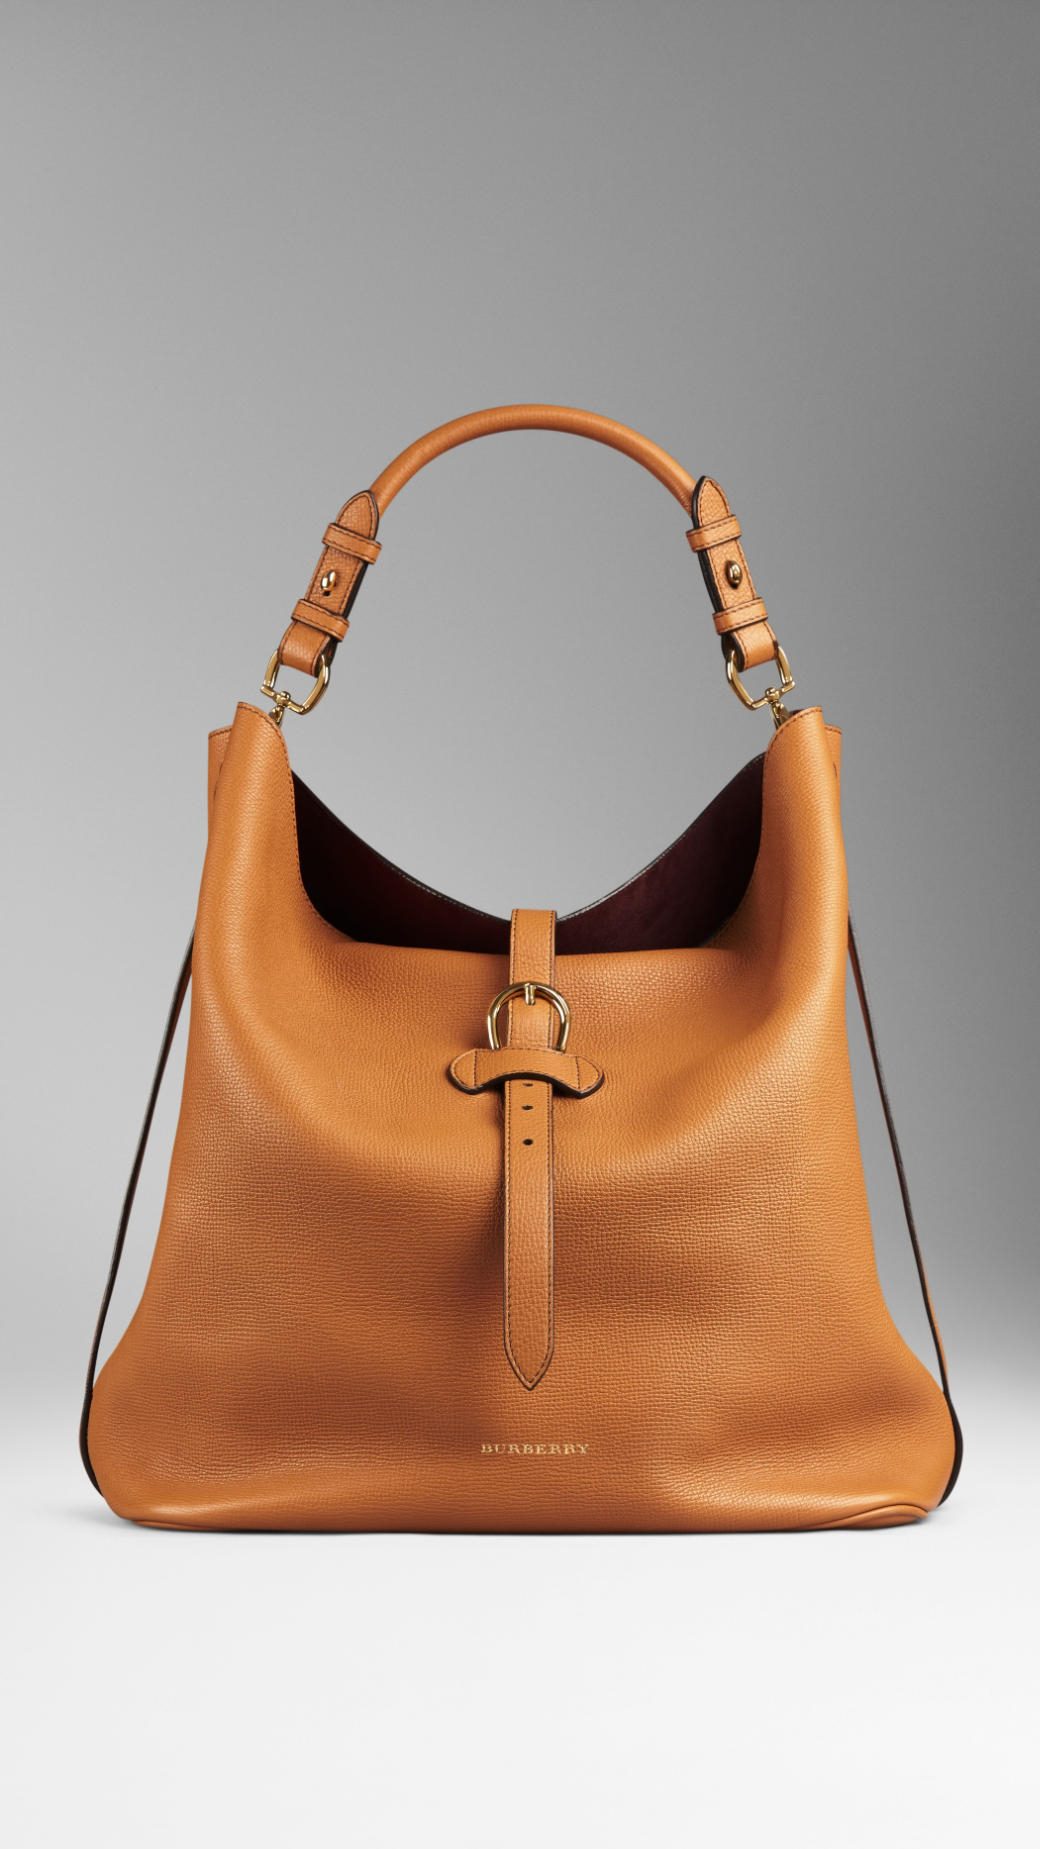 Burberry Large Buckle Detail Leather Hobo Bag in Brown | Lyst